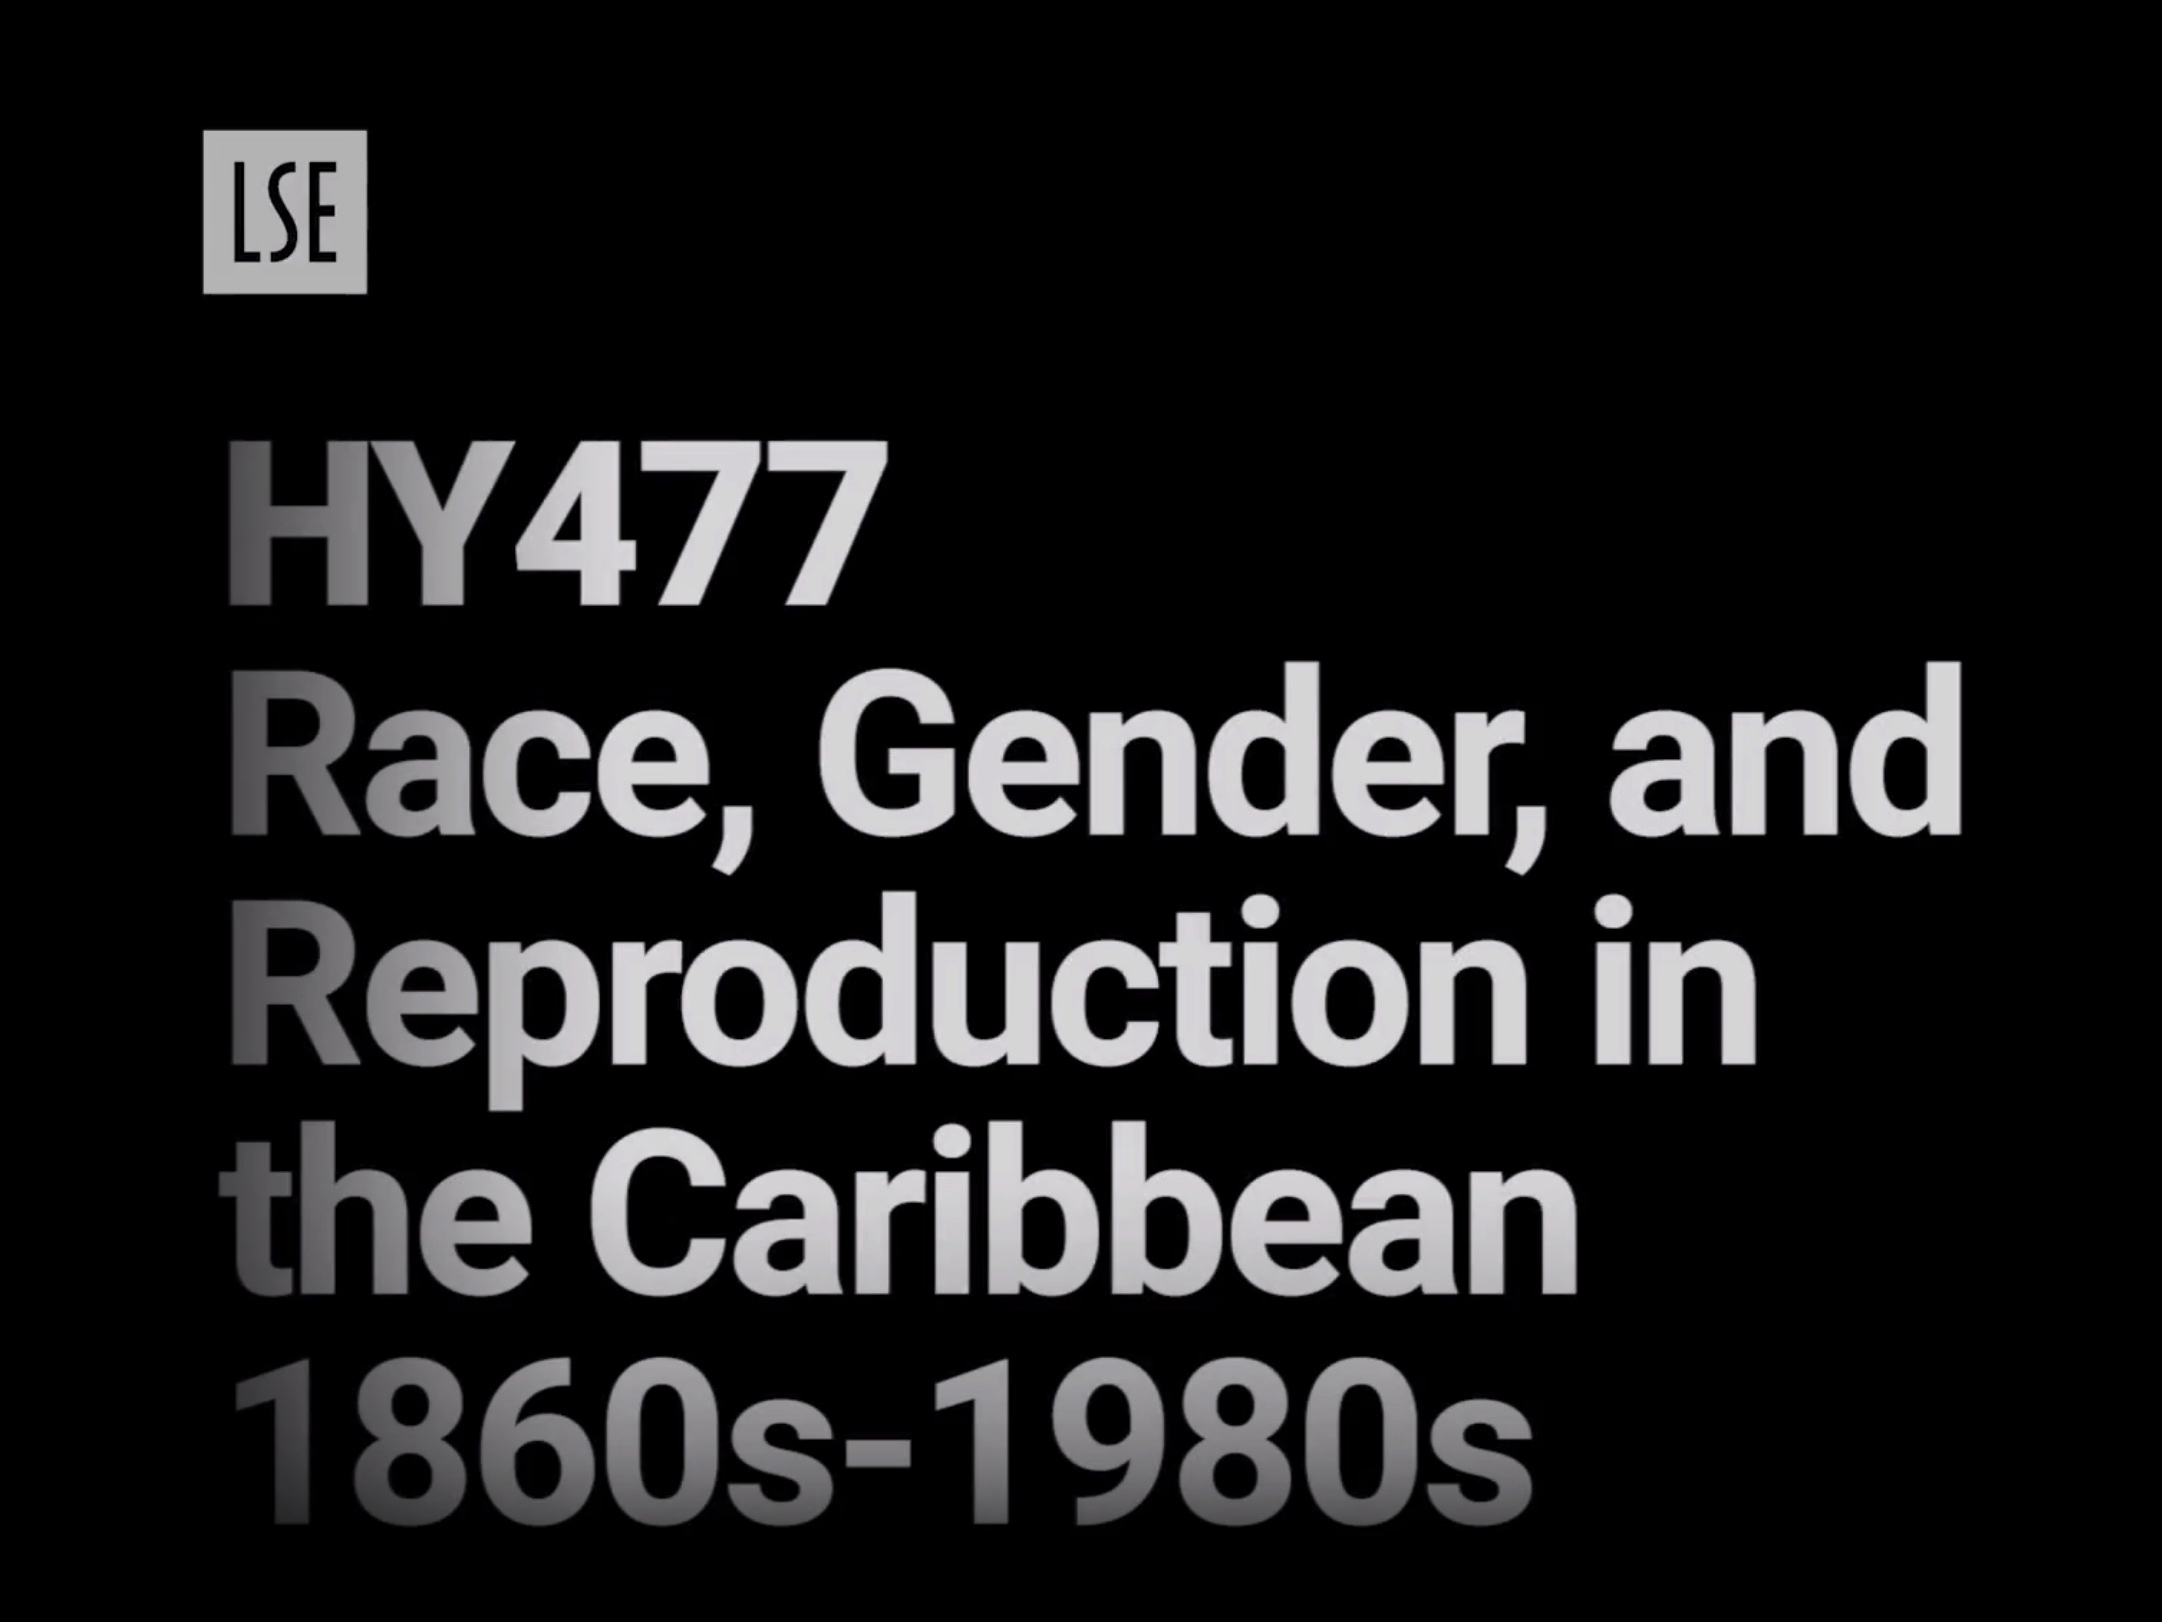 HY477: Race, Gender, and Reproduction in the Caribbean 1860s-1980s